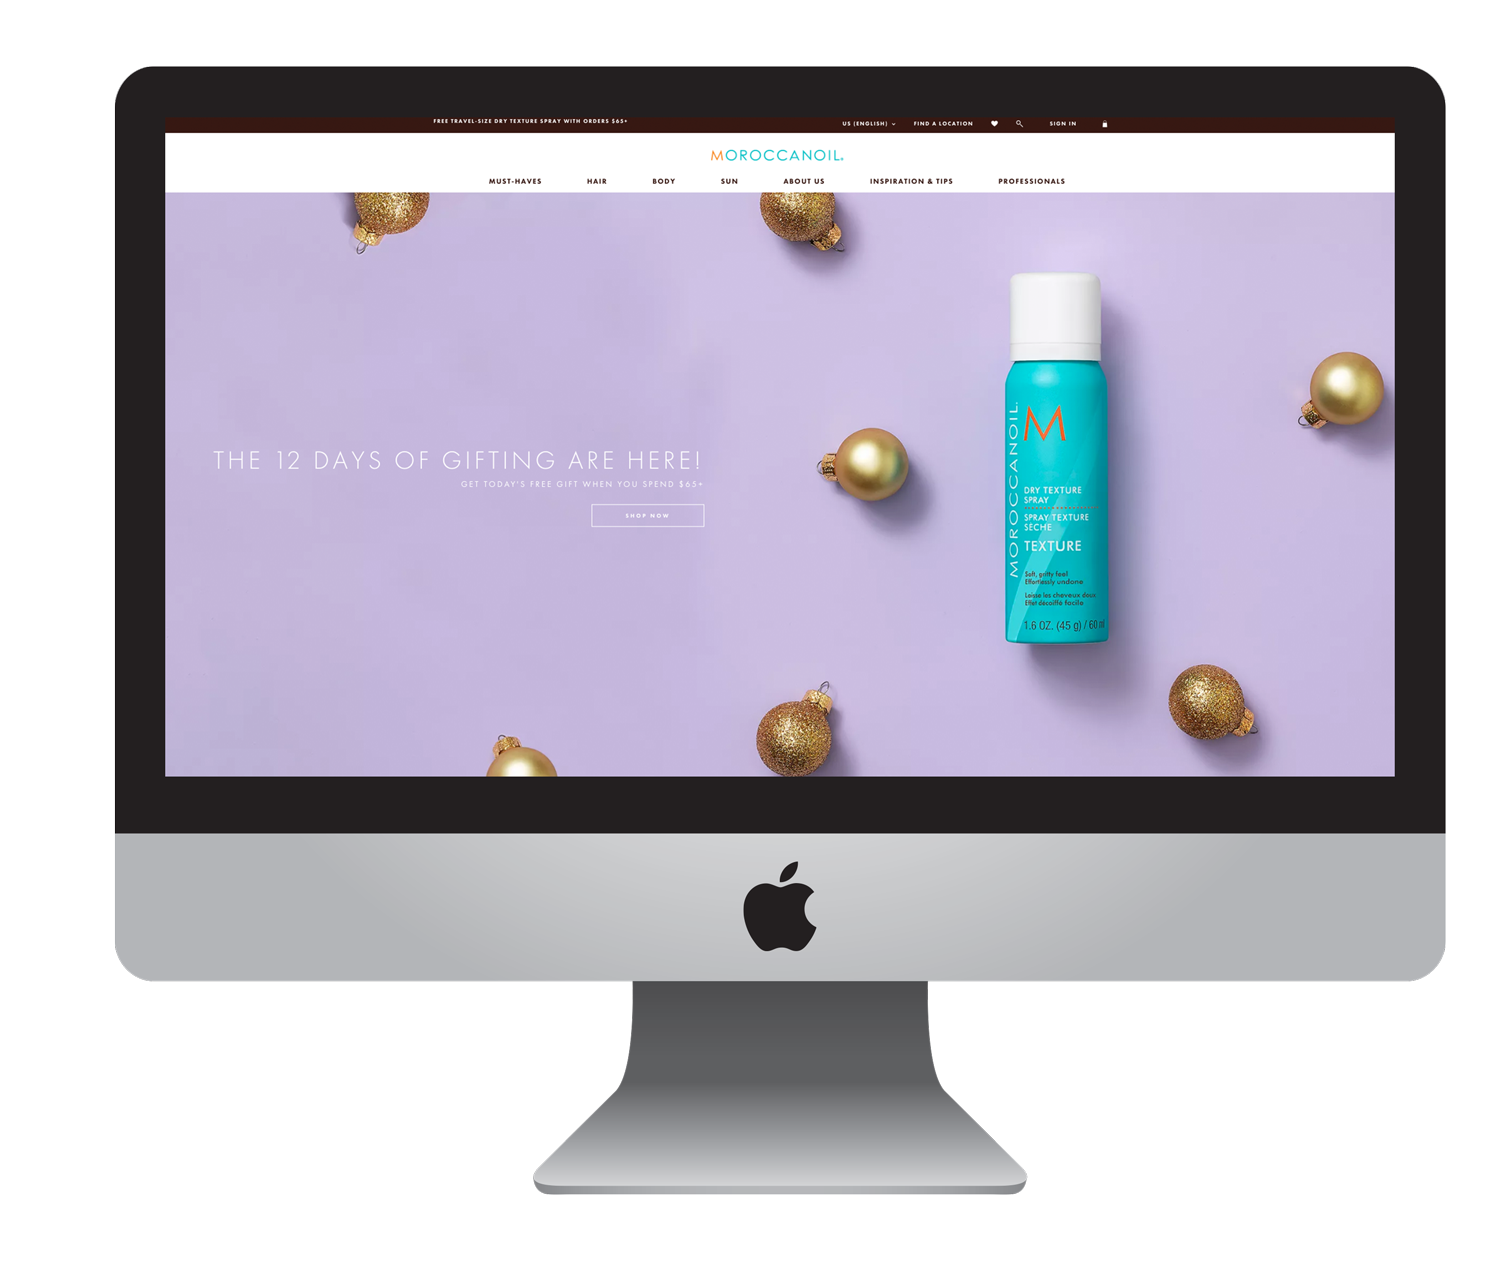 Moroccanoil_Holiday_Desktop.png